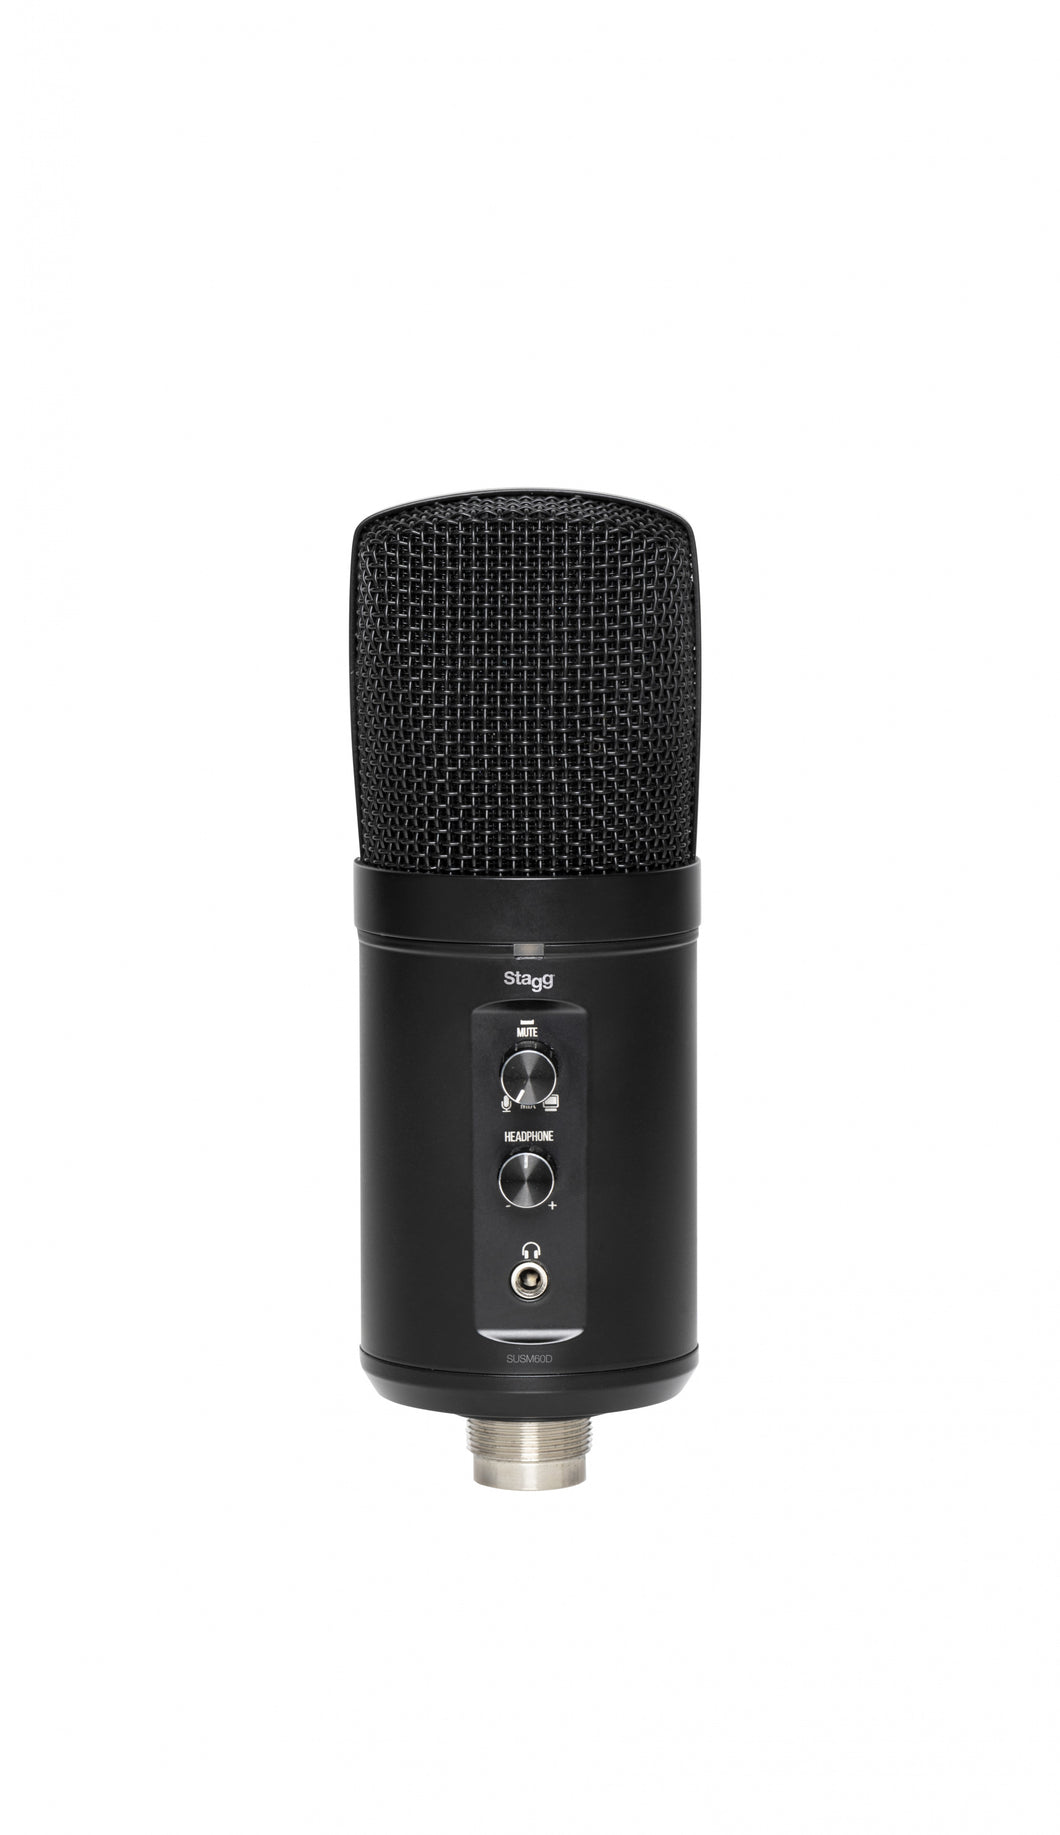 Stagg SUSM60D USB DOUBLE CONDENSER MICROPHONE